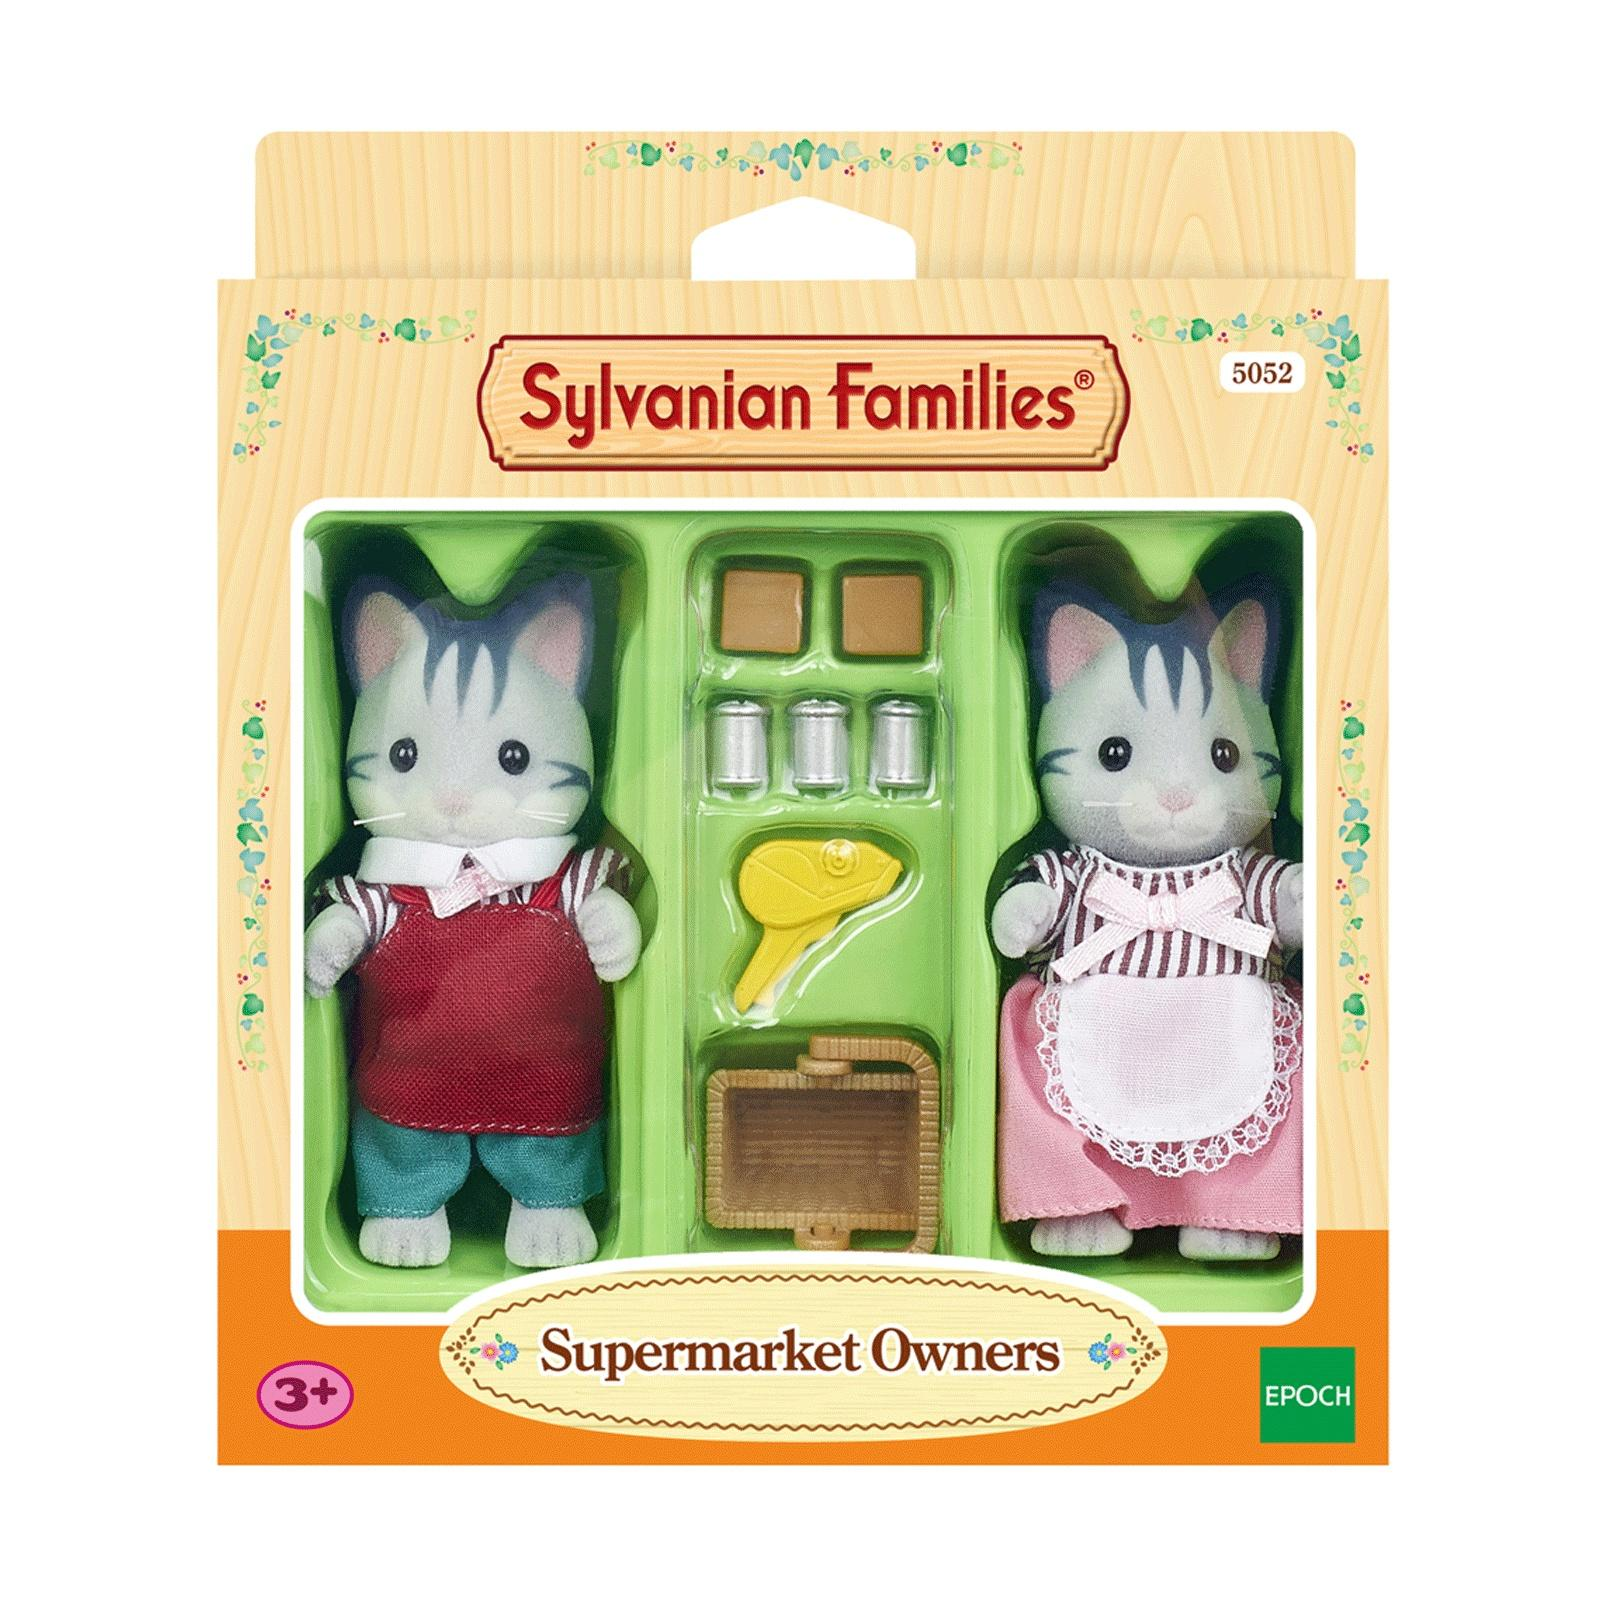 Sylvanian Families Supermarket Owners (5052)